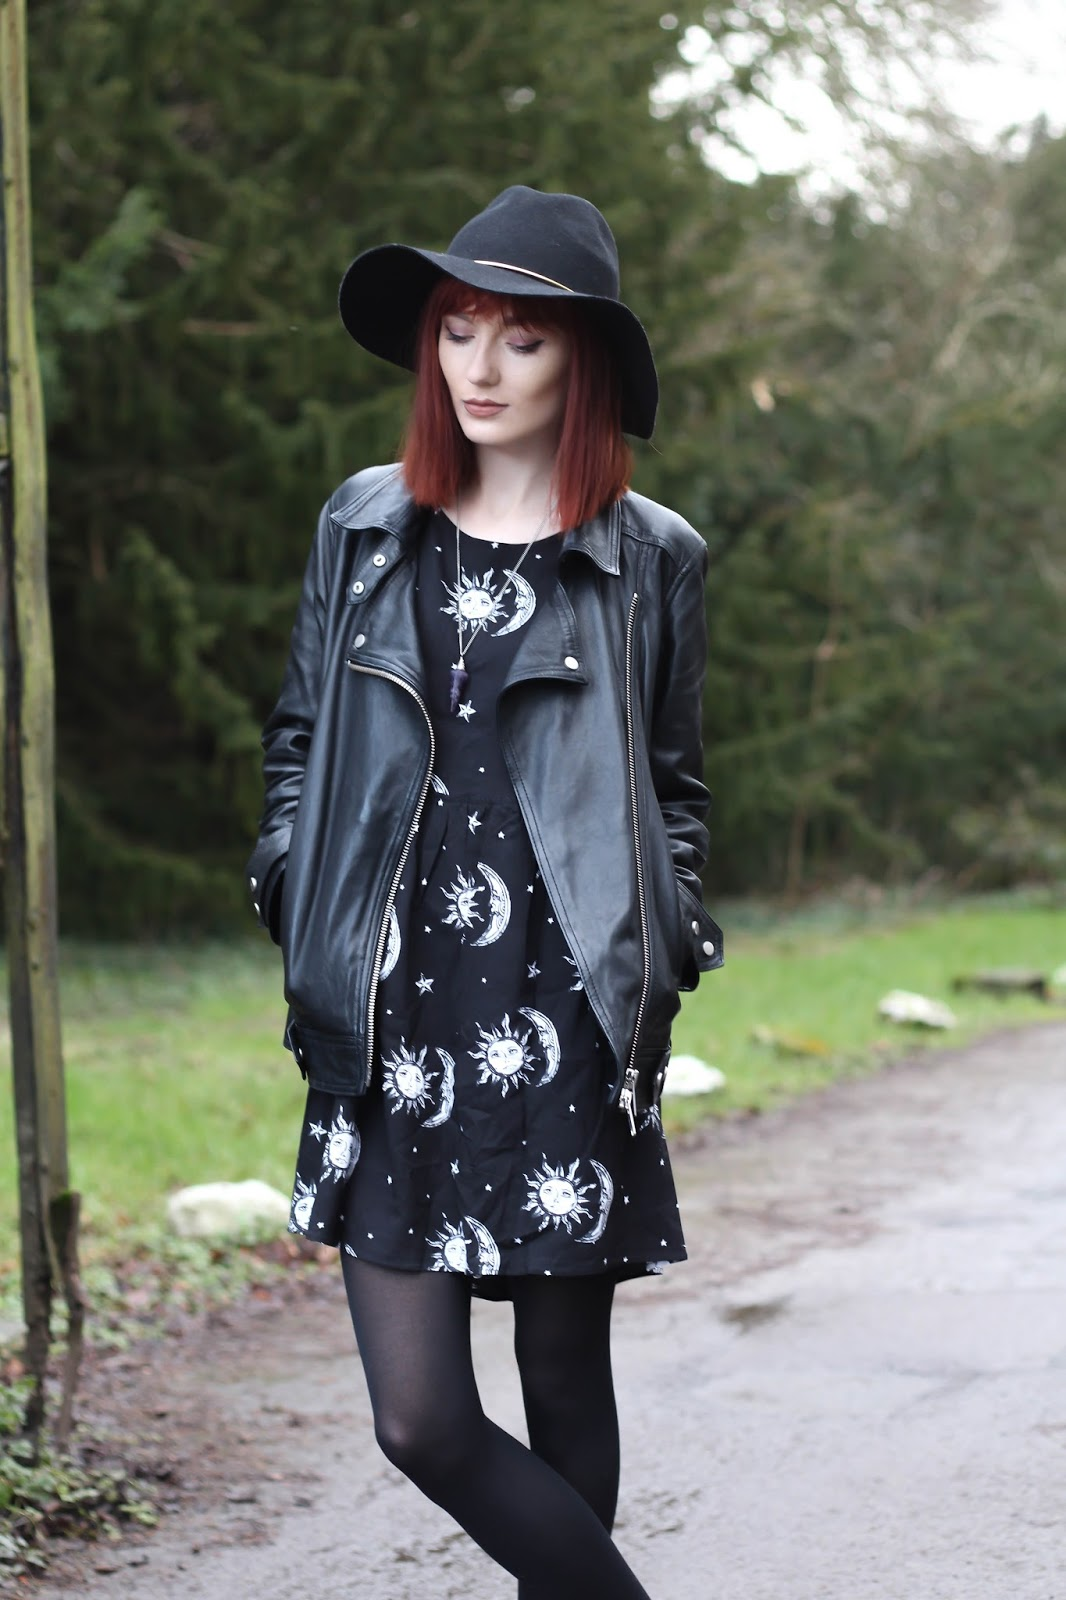 6cb3a633a6d0 *BABY DOLL DRESS IN SUN MOON AND STARS PRINT: c/o MOTEL ROCKS / VELVET  ANKLE BOOTS: ASOS (similar) / *ALL SAINTS LEATHER JACKET: c/o JOHN LEWIS /  FLOPPY ...